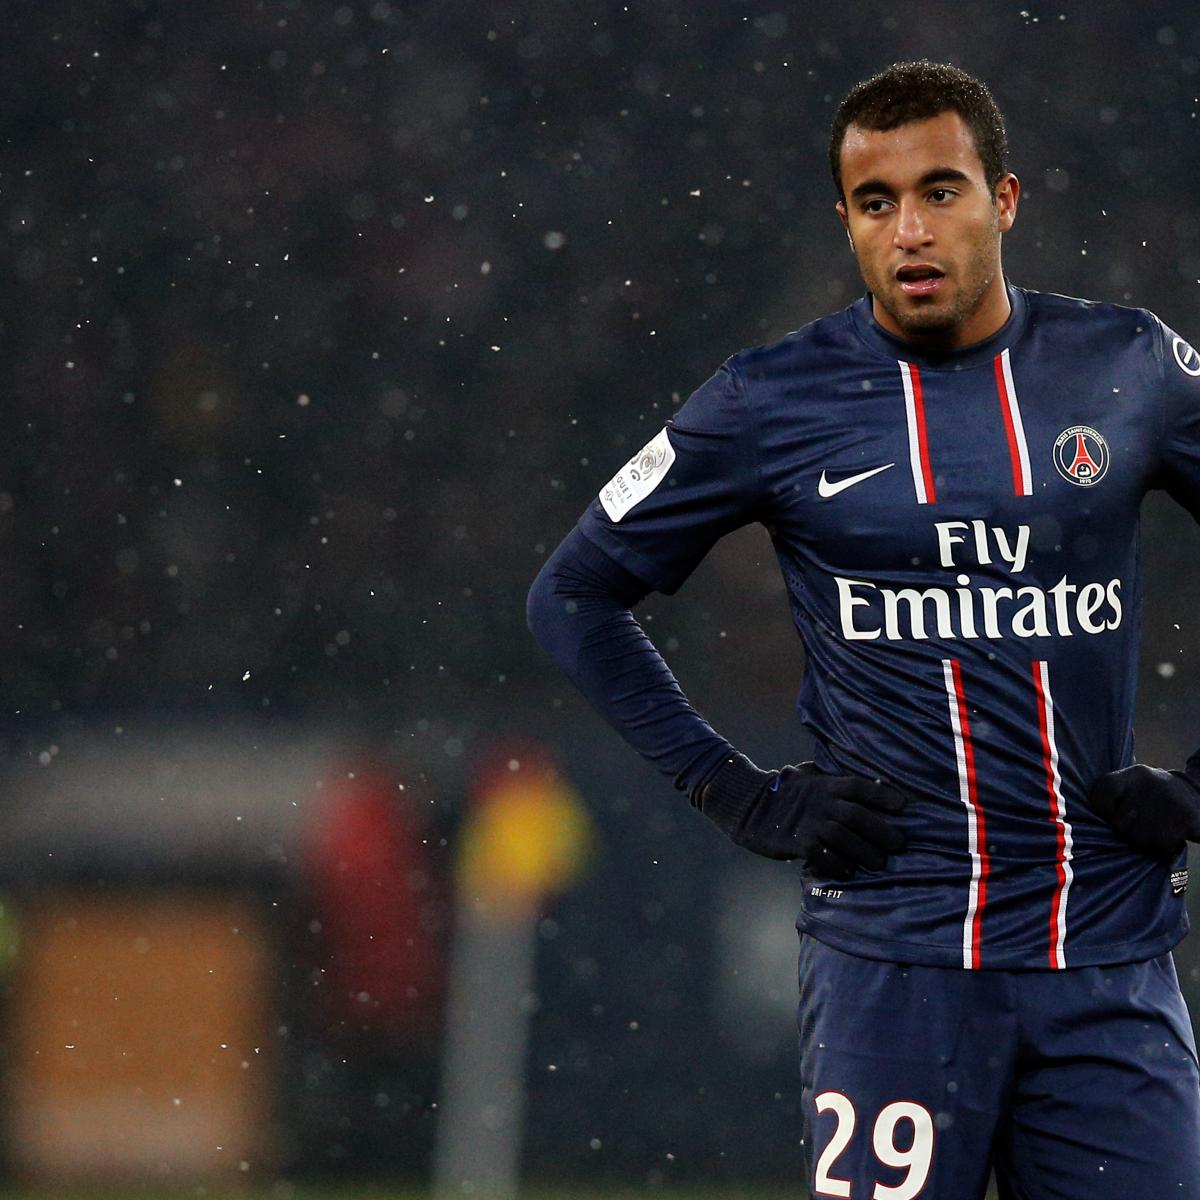 Psg Transfer News Latest Rumours On Lucas Moura And: Premier League Transfers: 9 Players Liverpool Should